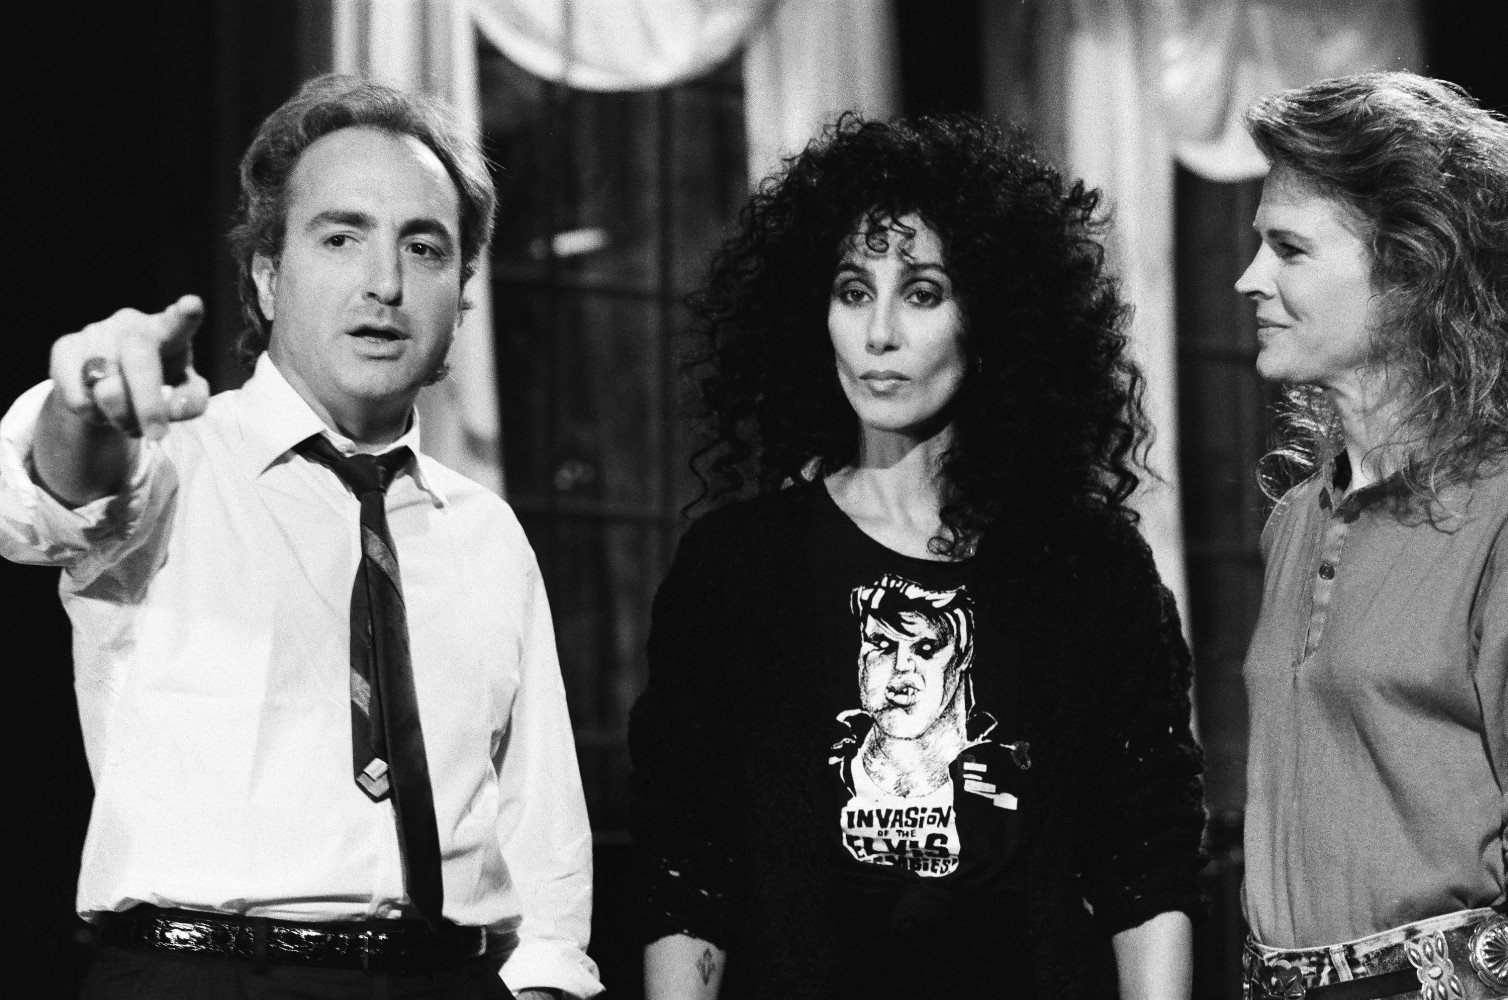 Lorne Michaels Talks <i>SNL</i>, Sinead O&#8217;Connor, <i>Wayne&#8217;s World</i>, and More in Our 1993 Interview